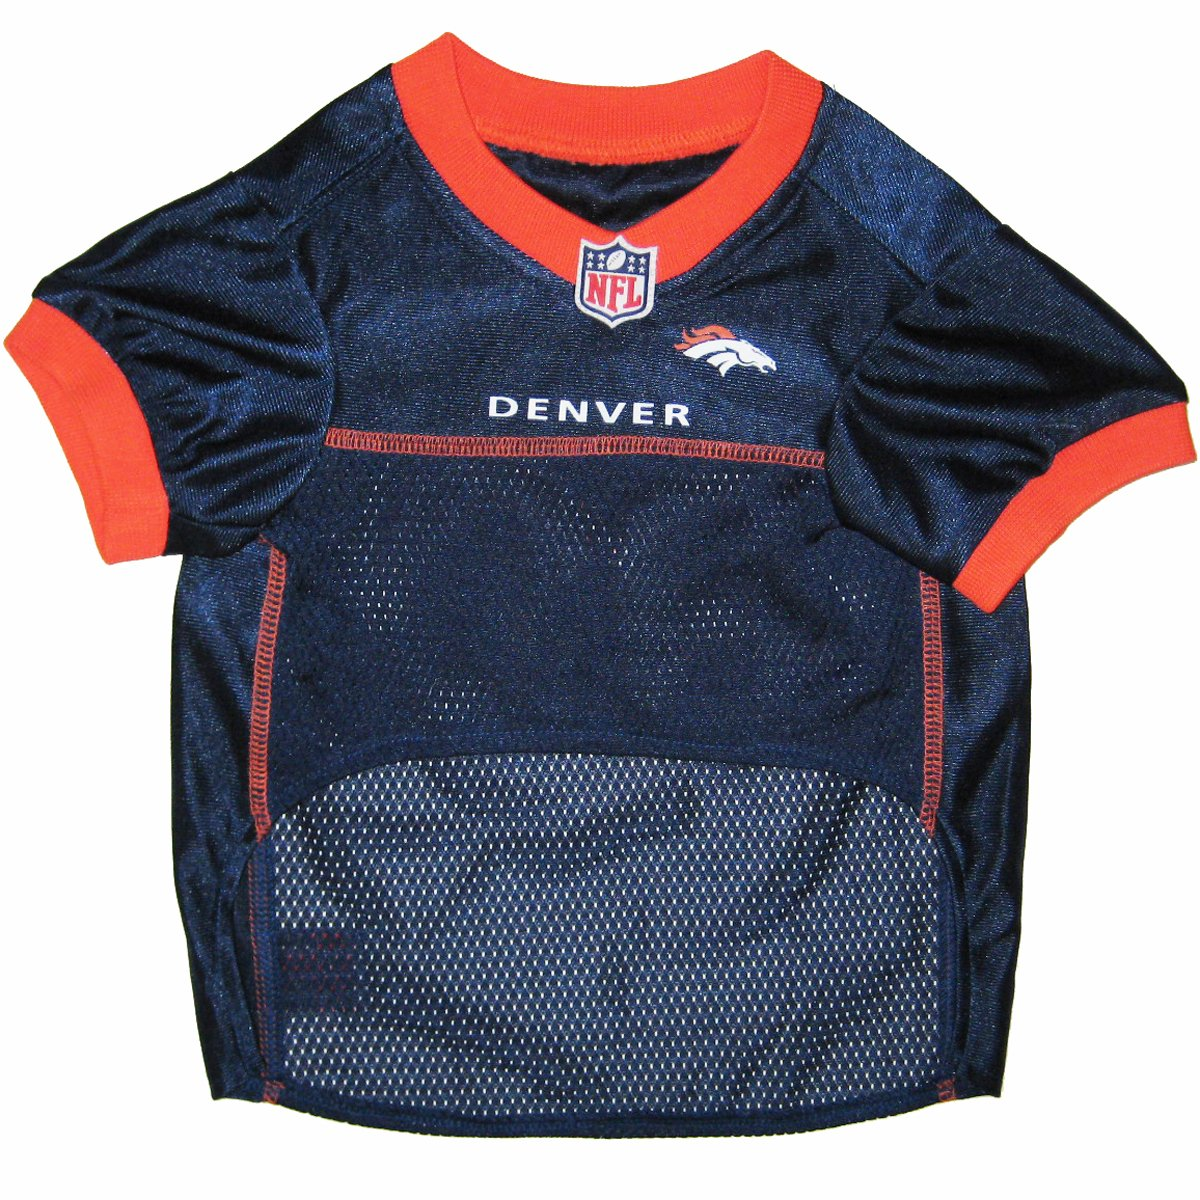 denver broncos jersey. 32 NFL Teams Available. - Comes In 6 Sizes. Football Pet Jersey. Sports Mesh Dog Jersey Outfit. : Dresses Supplies Denver Broncos N